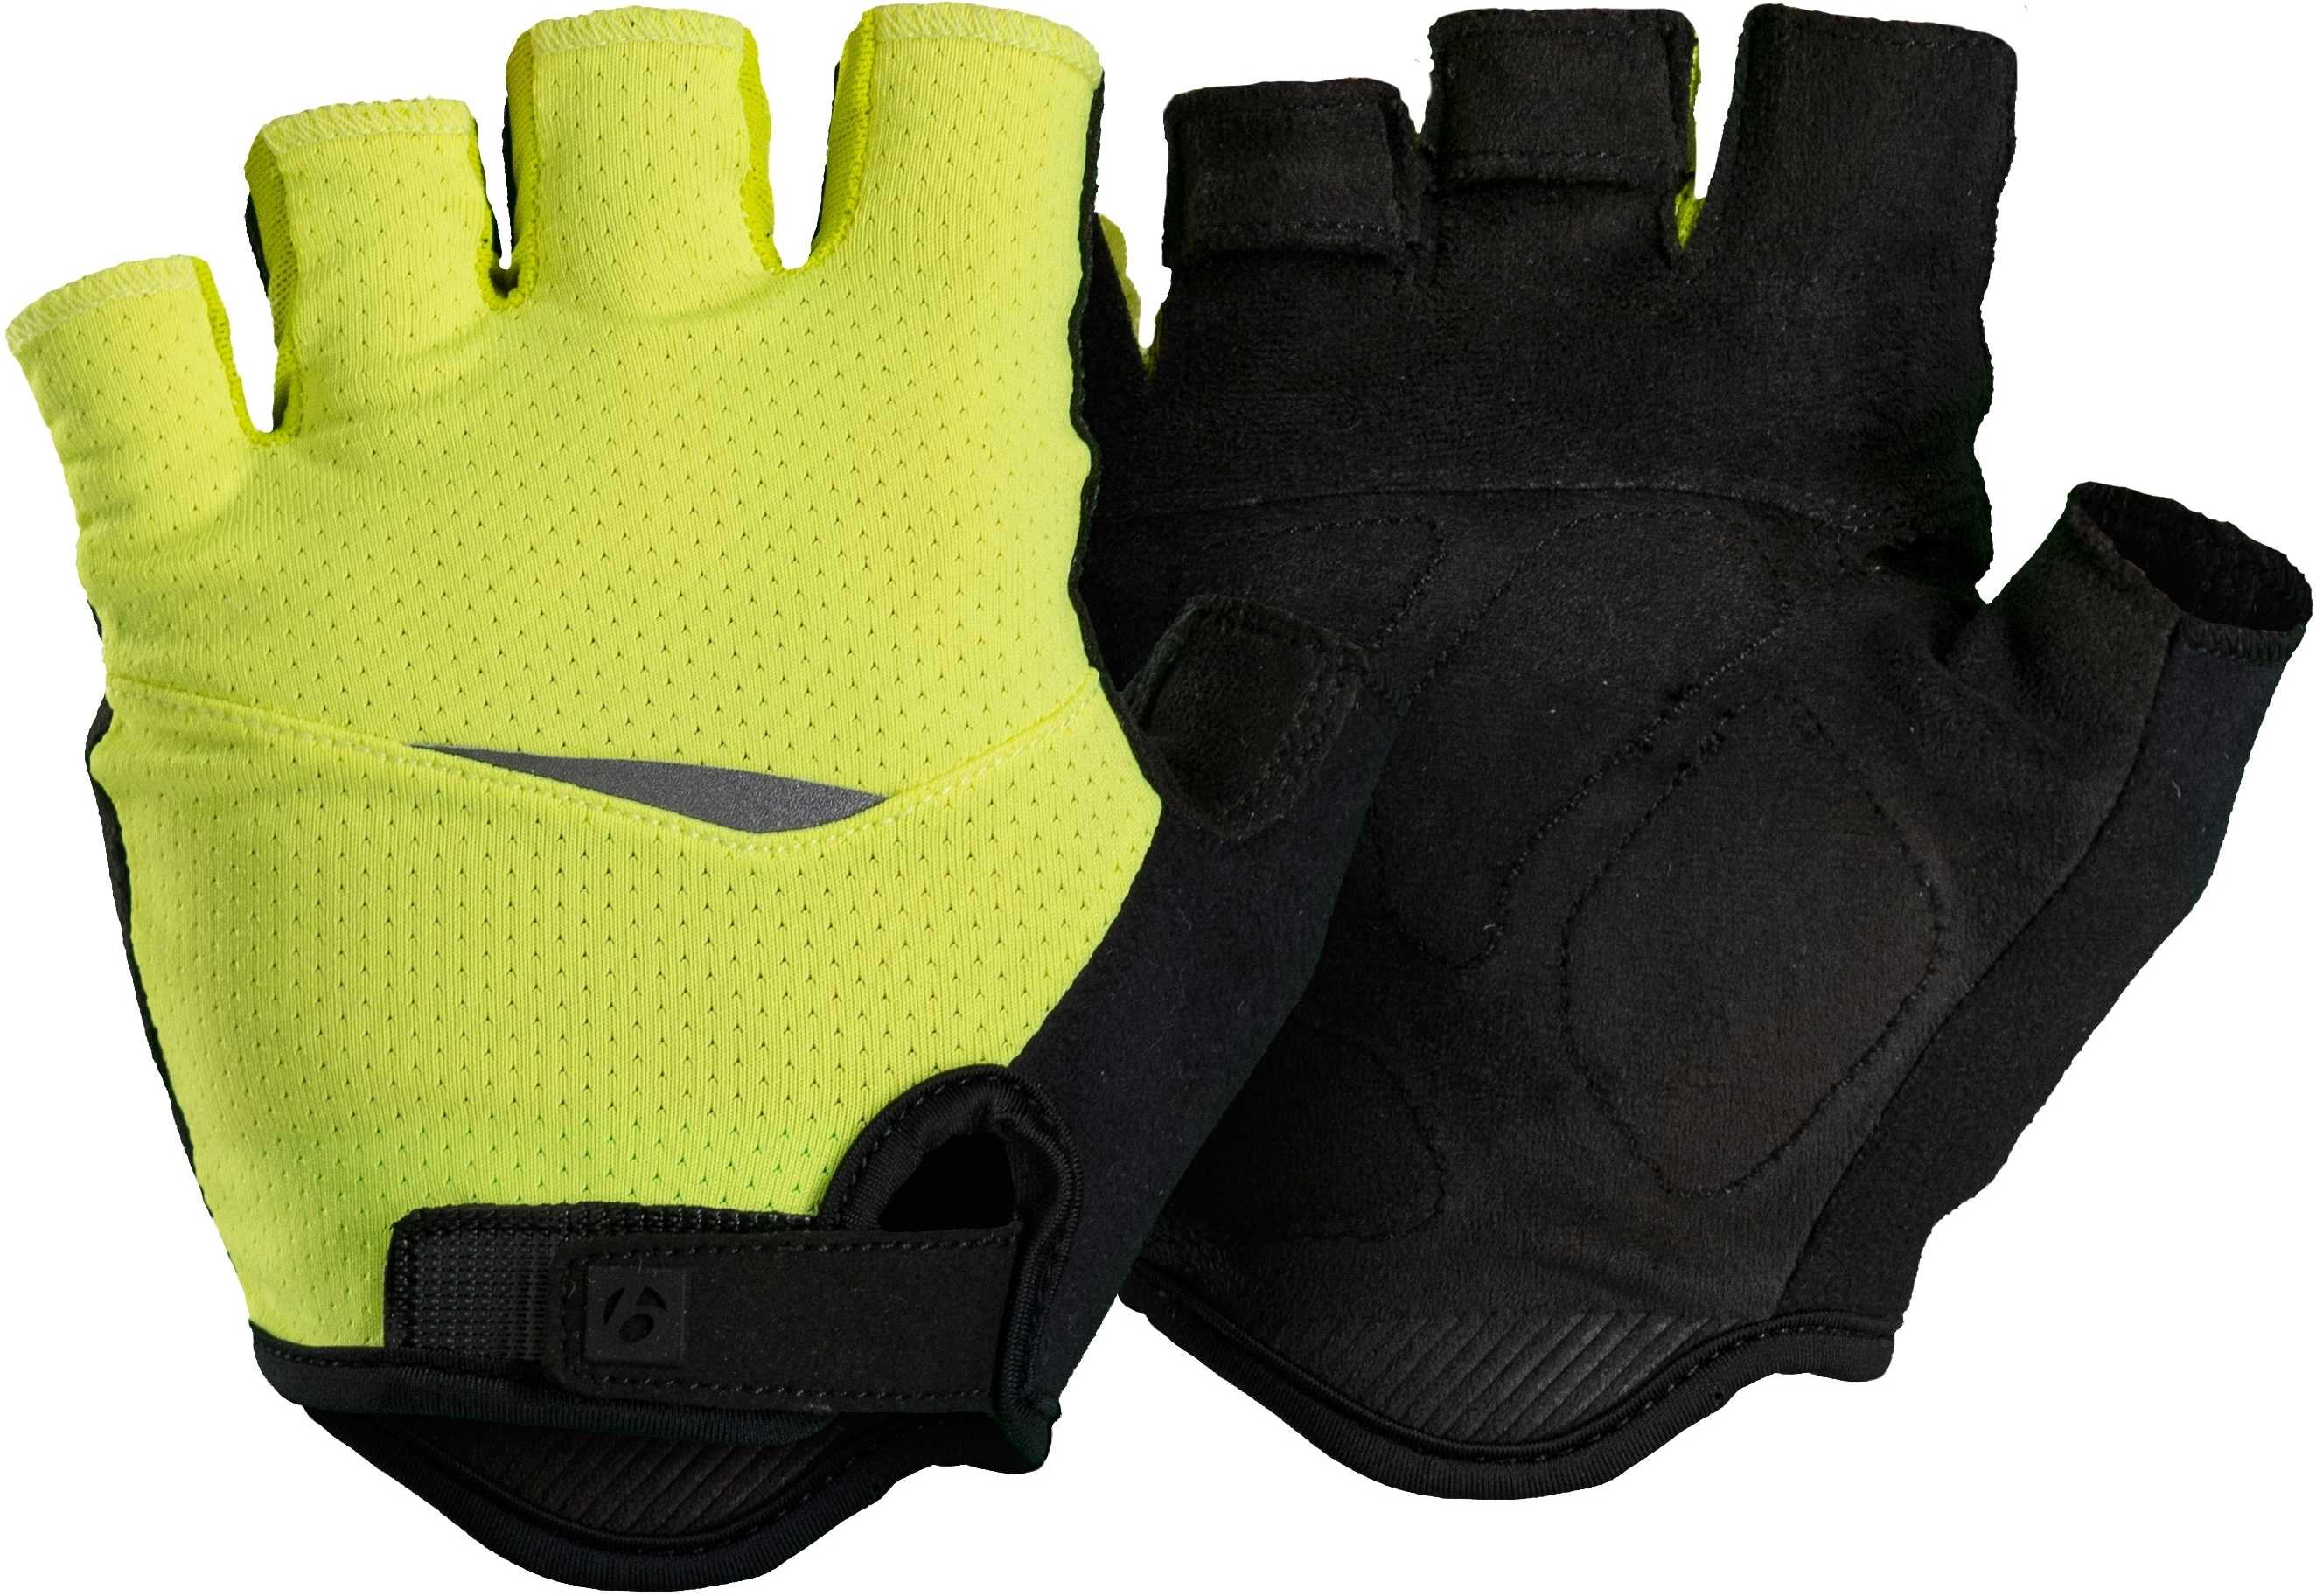 Bontrager Circuit Cycling Glove | Gloves